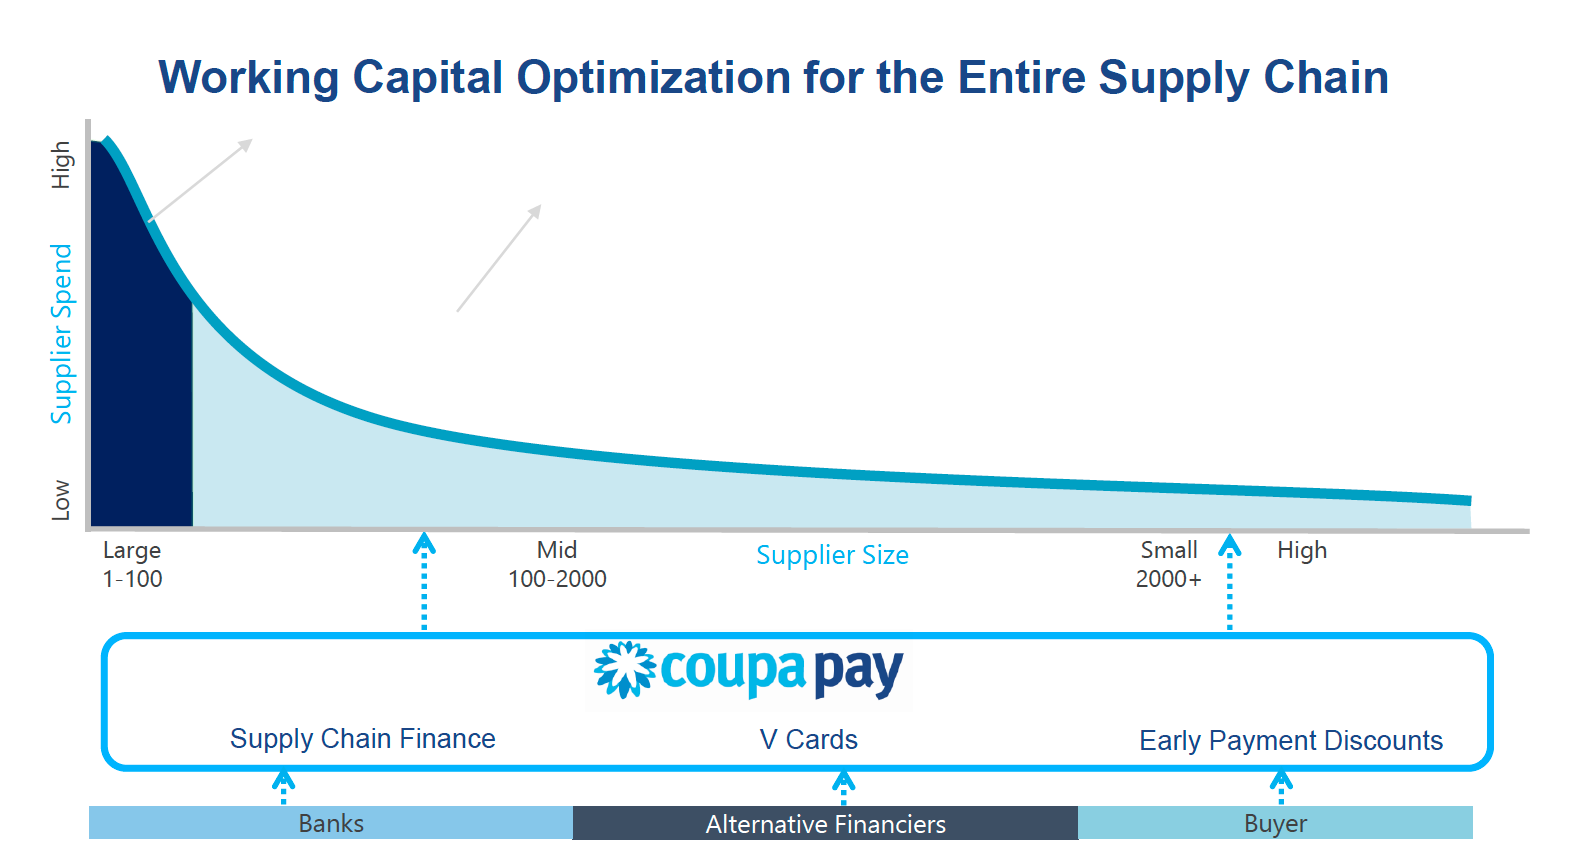 Working Capital Optimization for the Entire Supply Chain